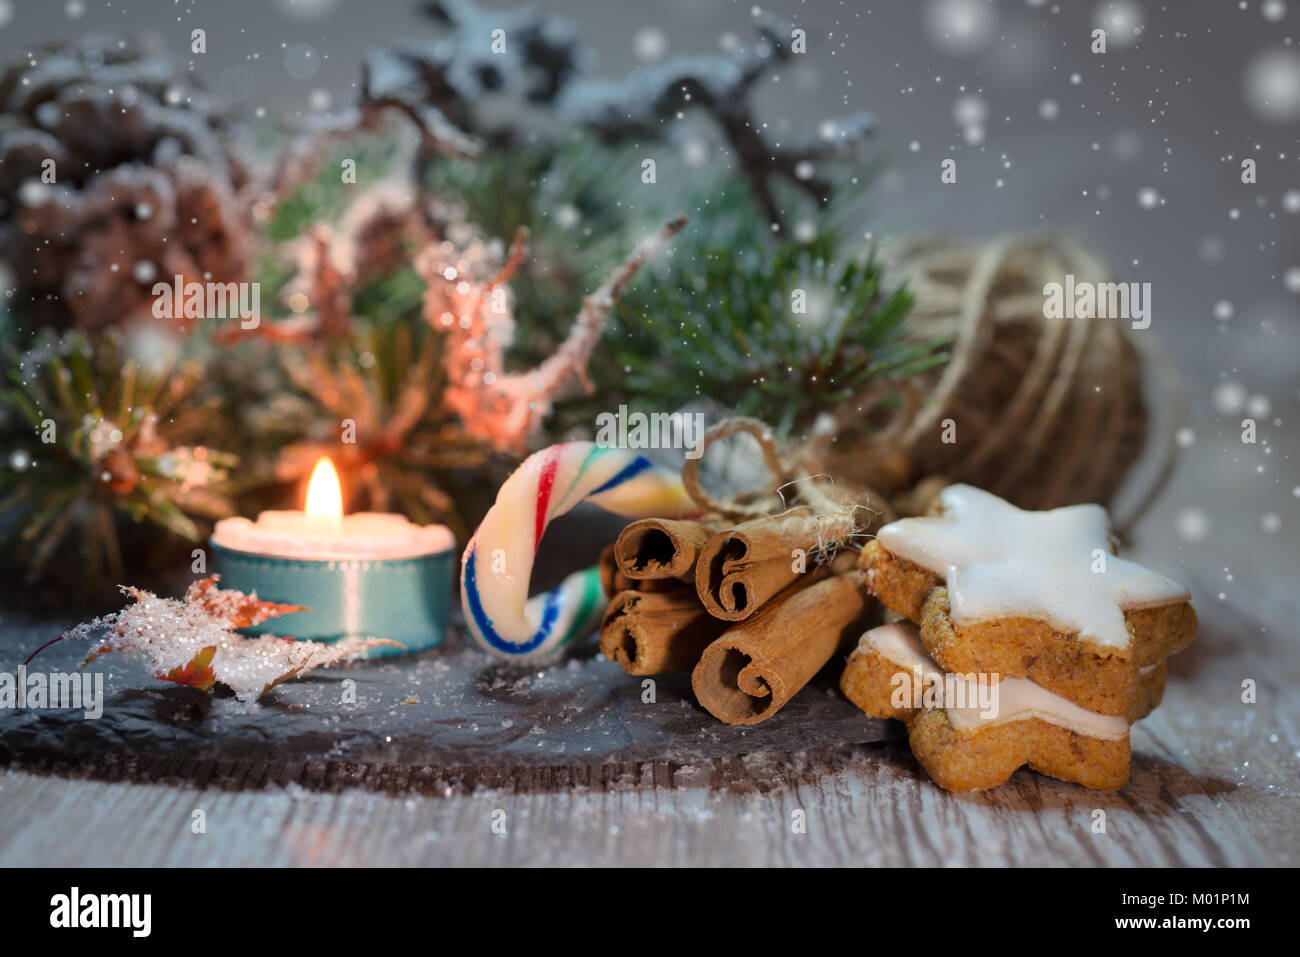 Christmas decorations with cinnamon sticks and cookies - Stock Image